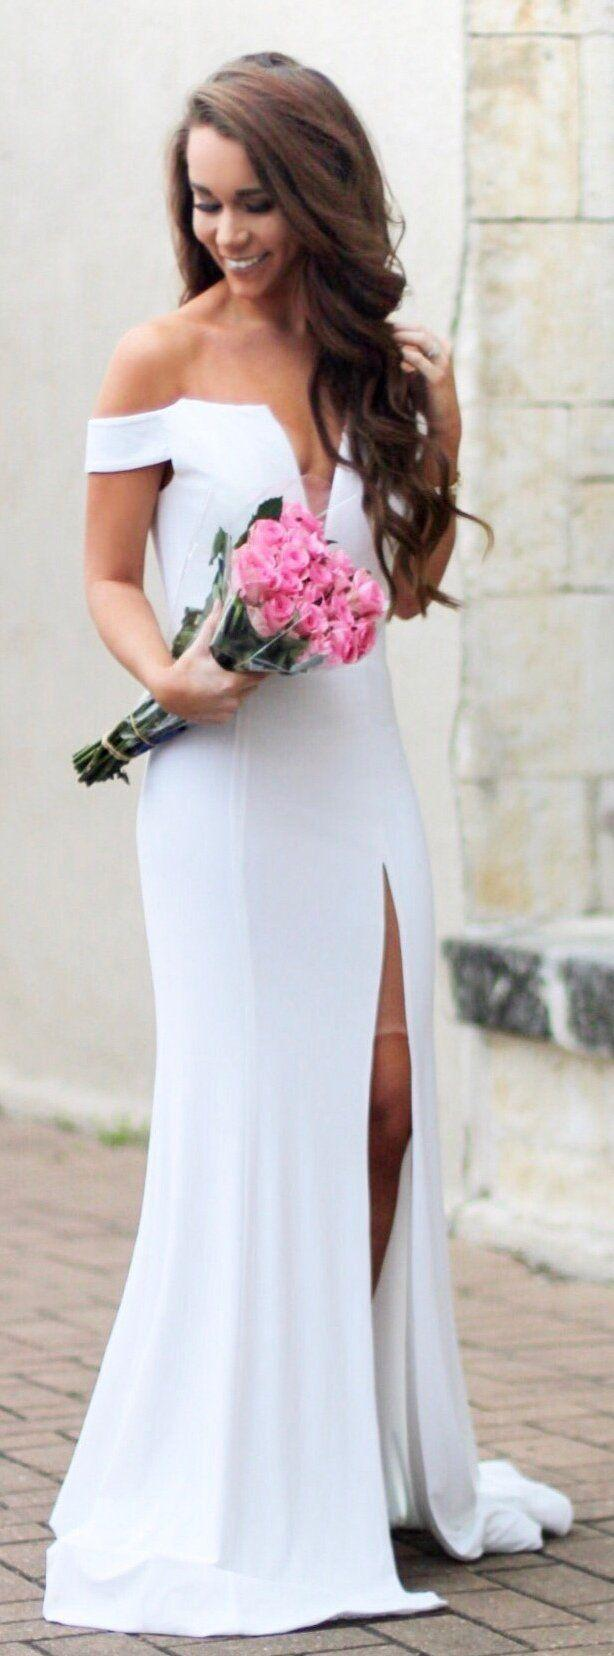 Mariage - 40  Insanely Stylish Spring Outfits To Inspire Yourself